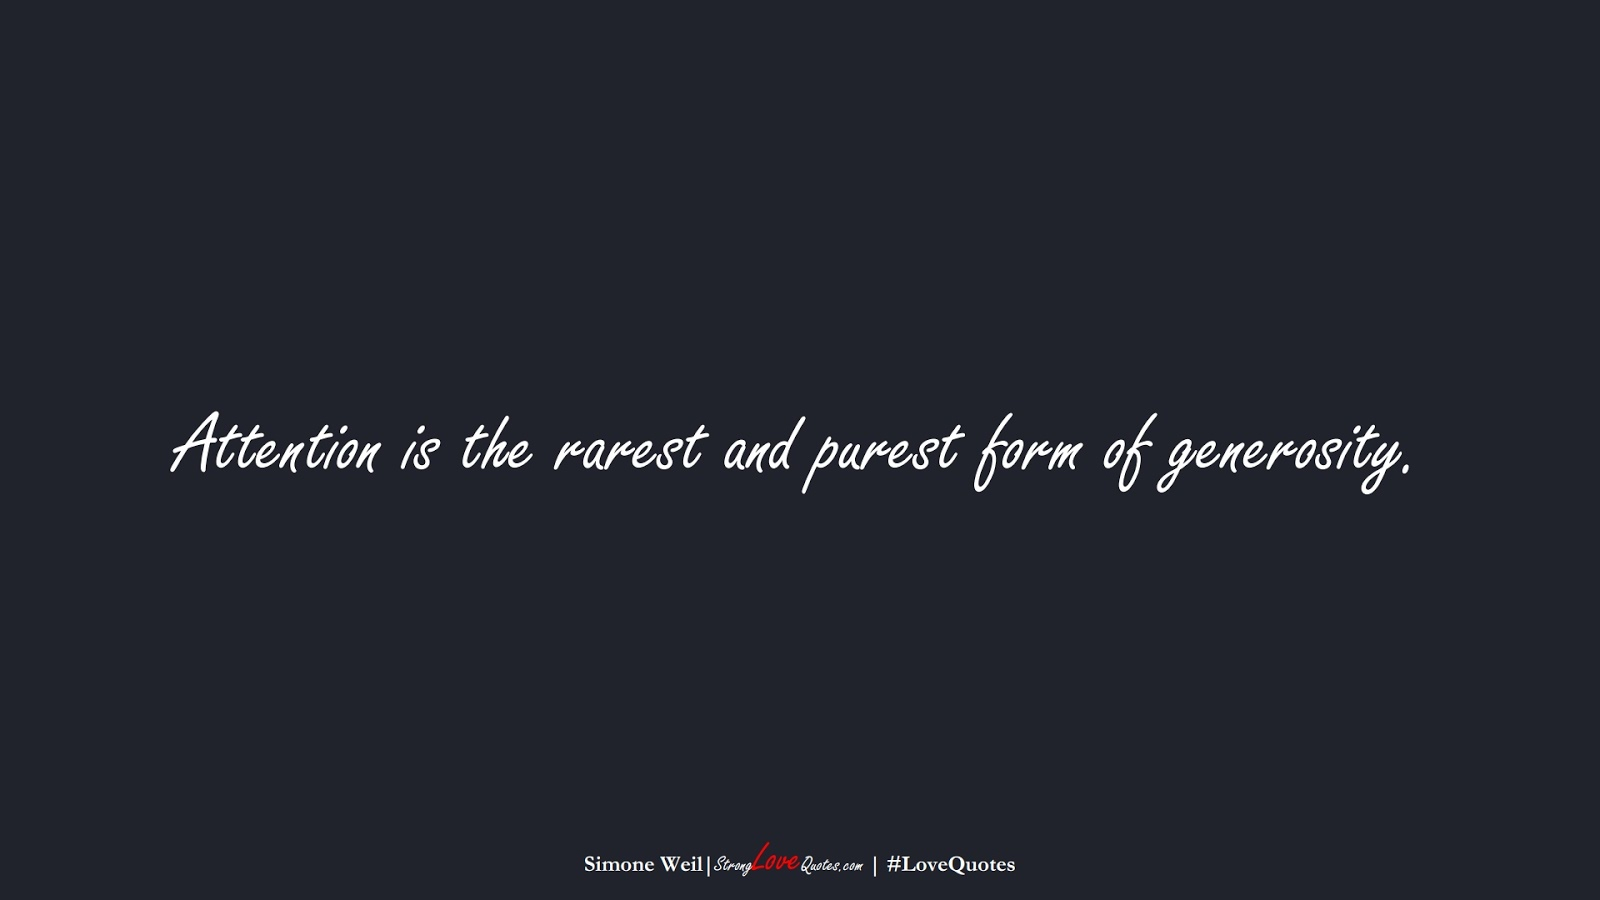 Attention is the rarest and purest form of generosity. (Simone Weil);  #LoveQuotes